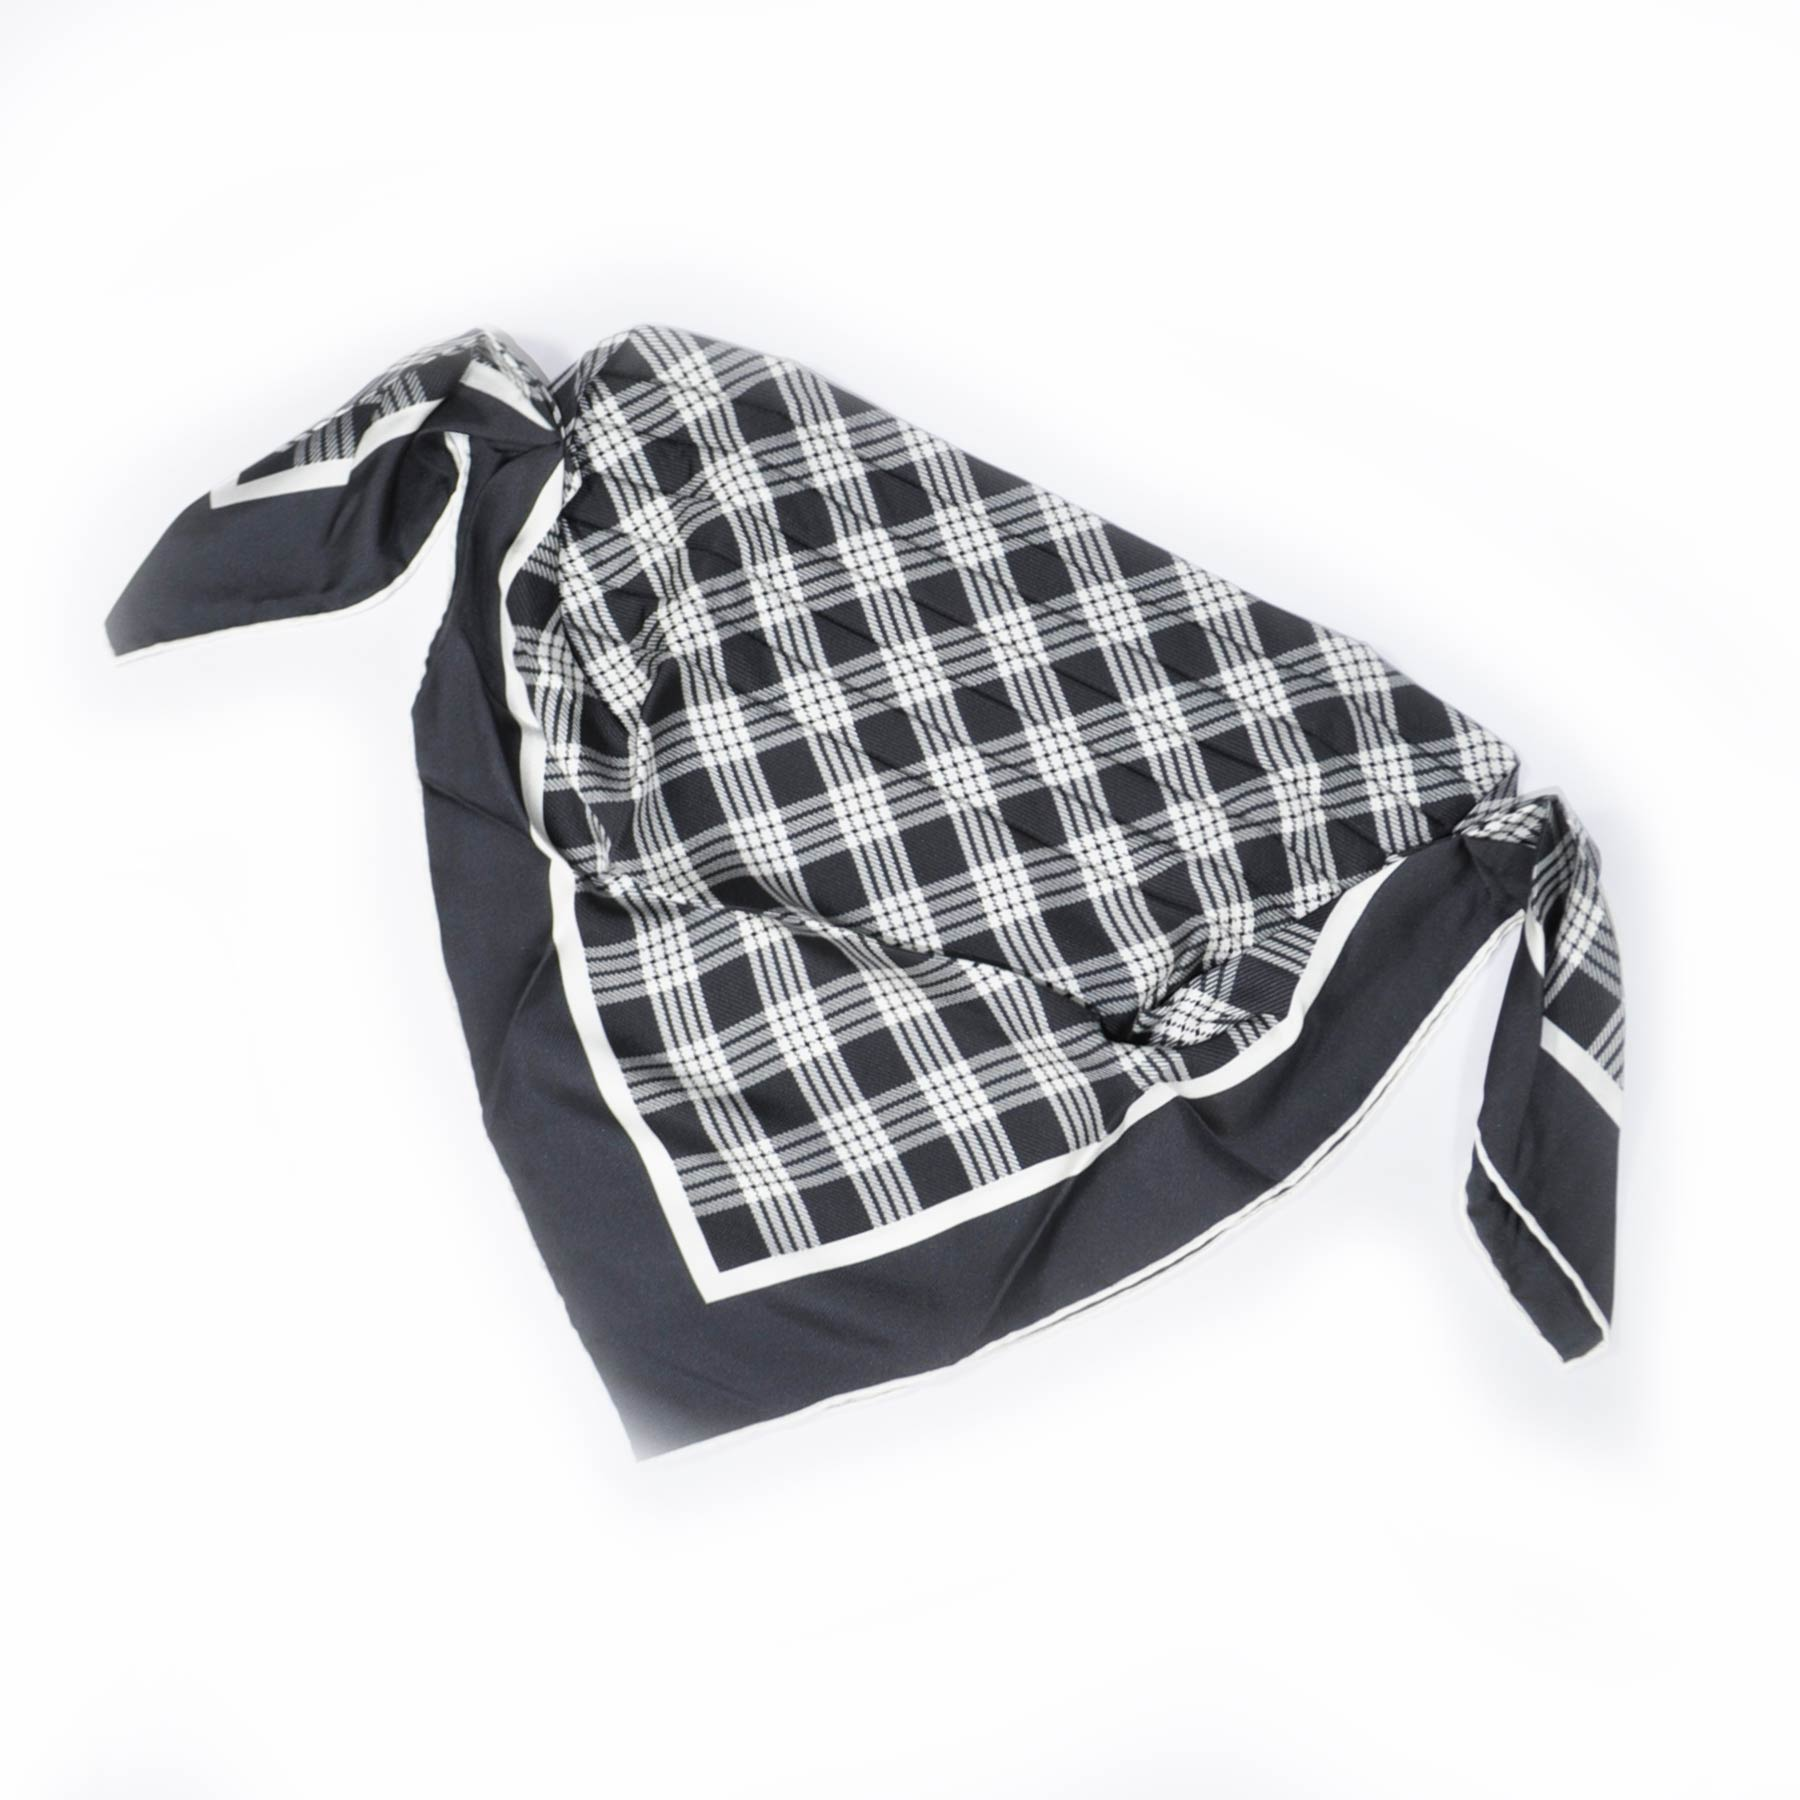 Agnona Scarf Metal Gray White Plaid Twill Silk Scarf SALE